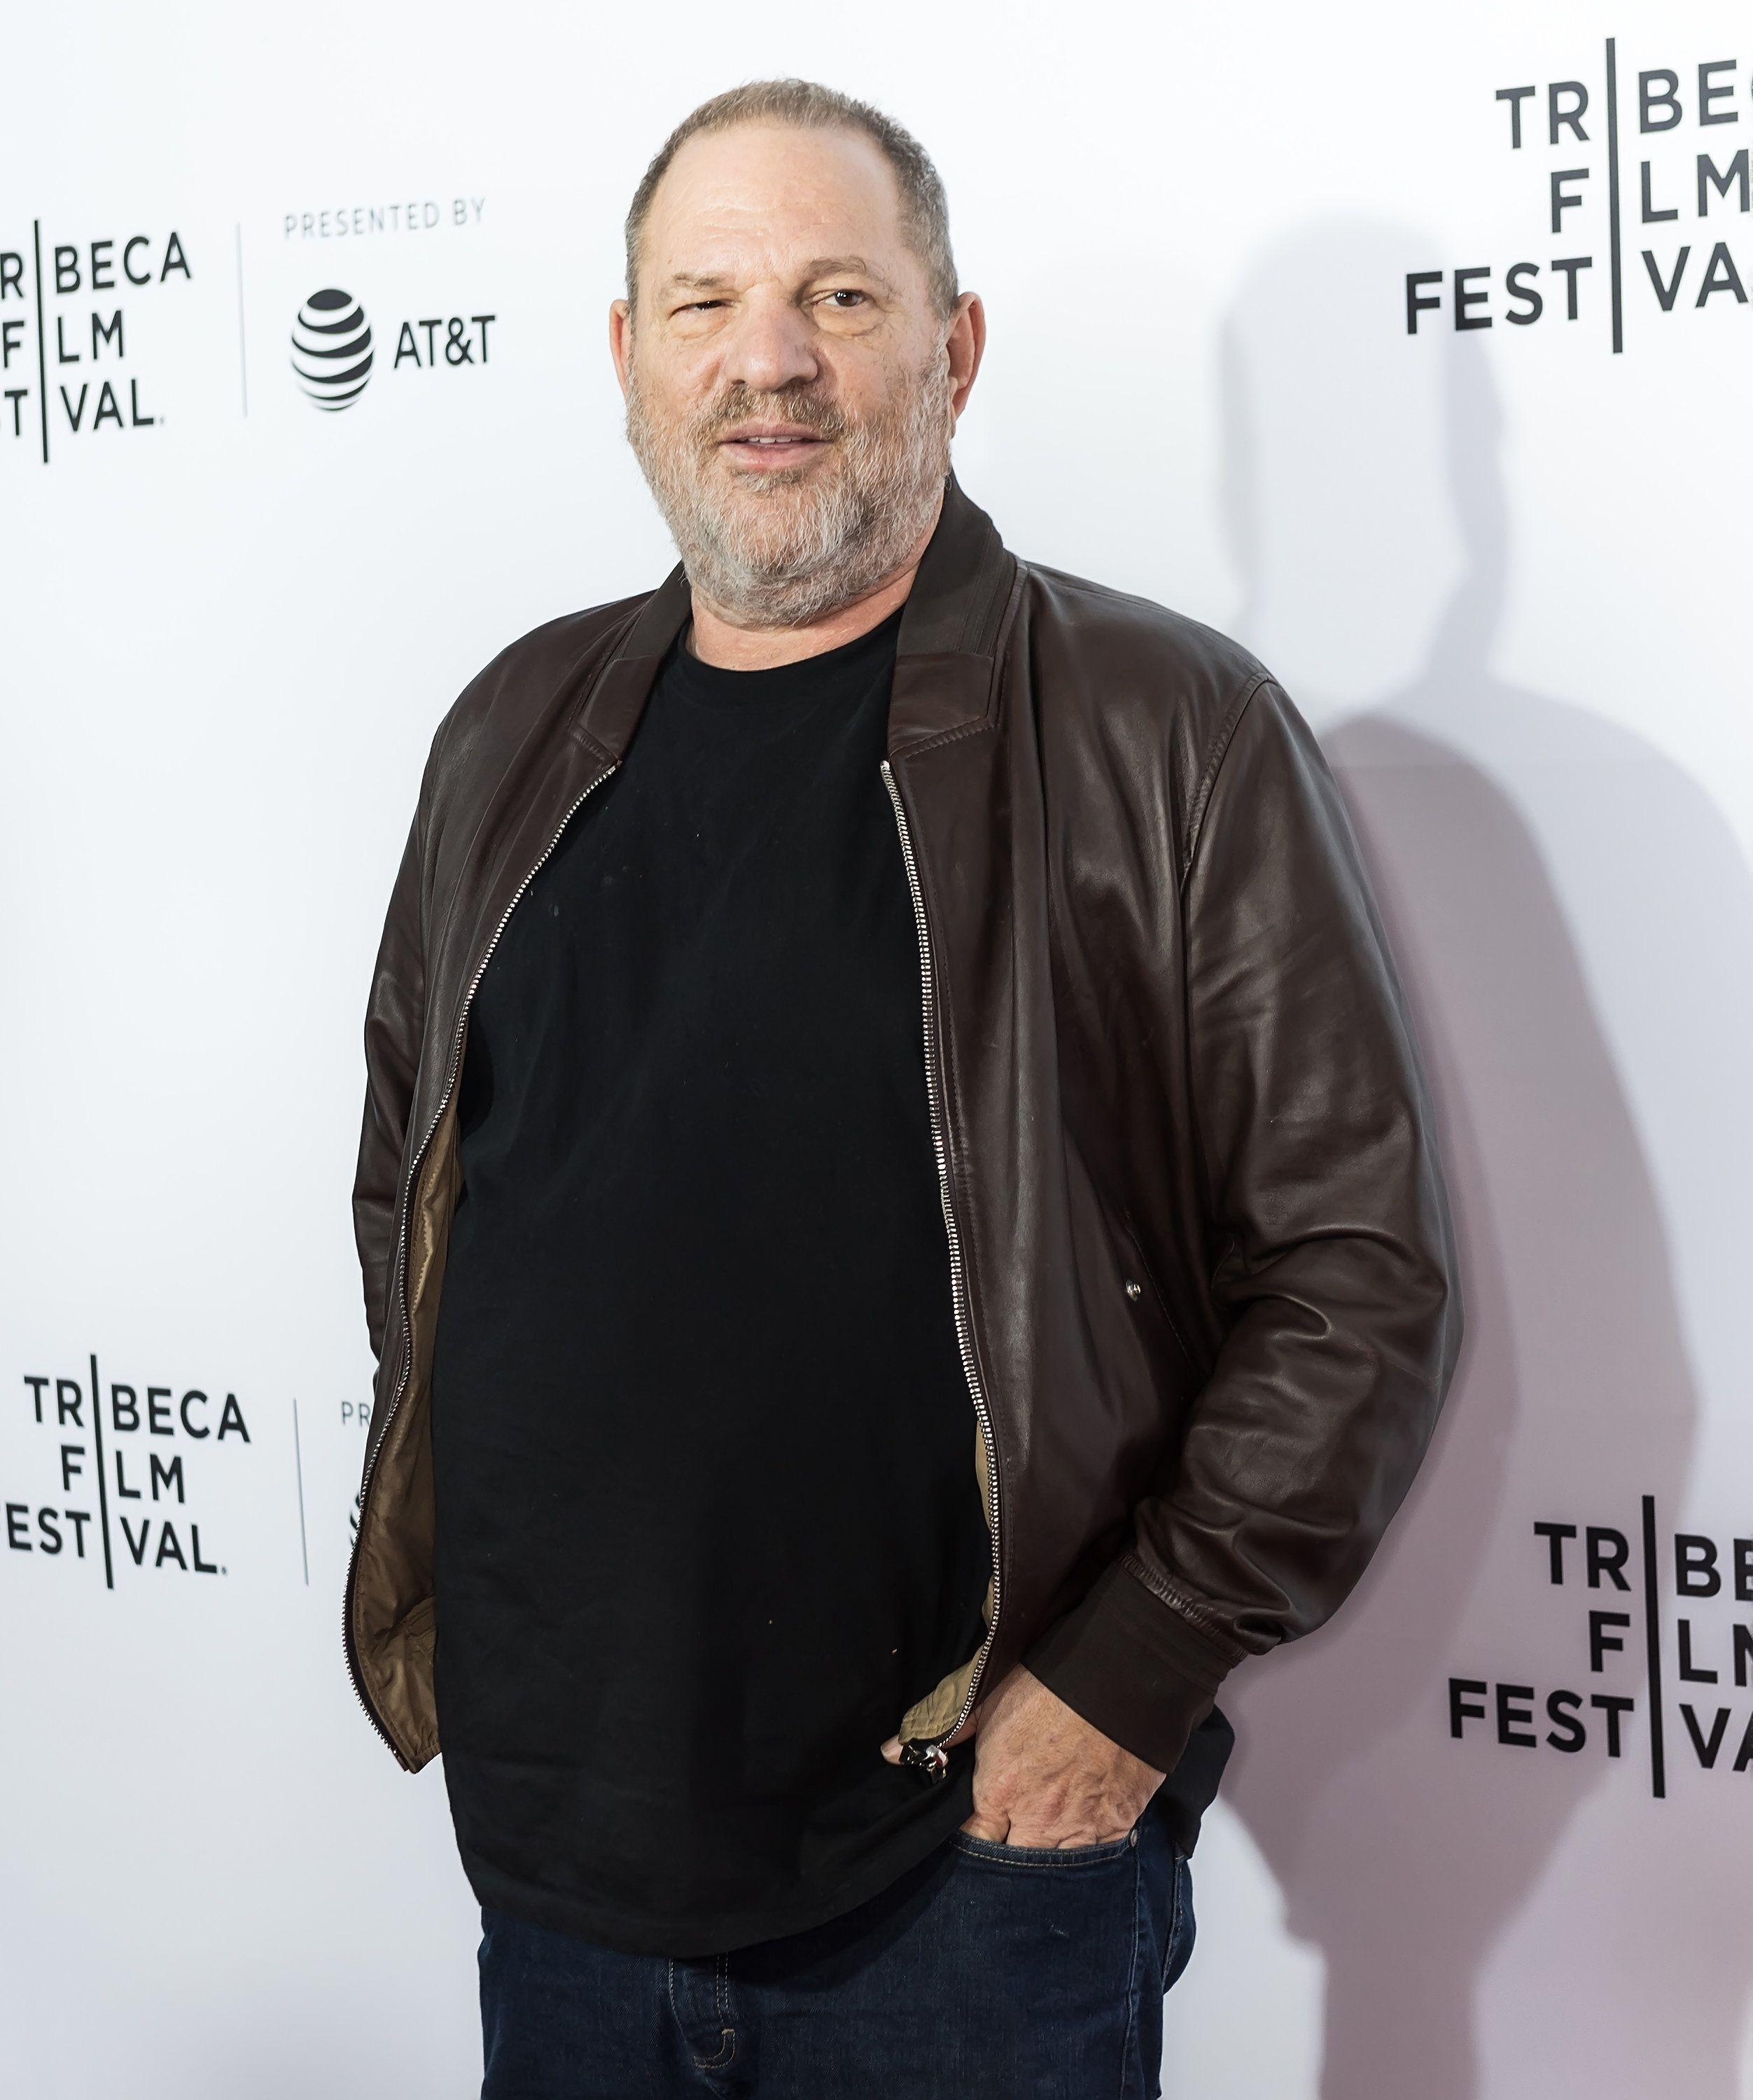 Harvey Weinstein, seen here in April 2017, has been accused by more than 80 women of a range of sexual misconduct.